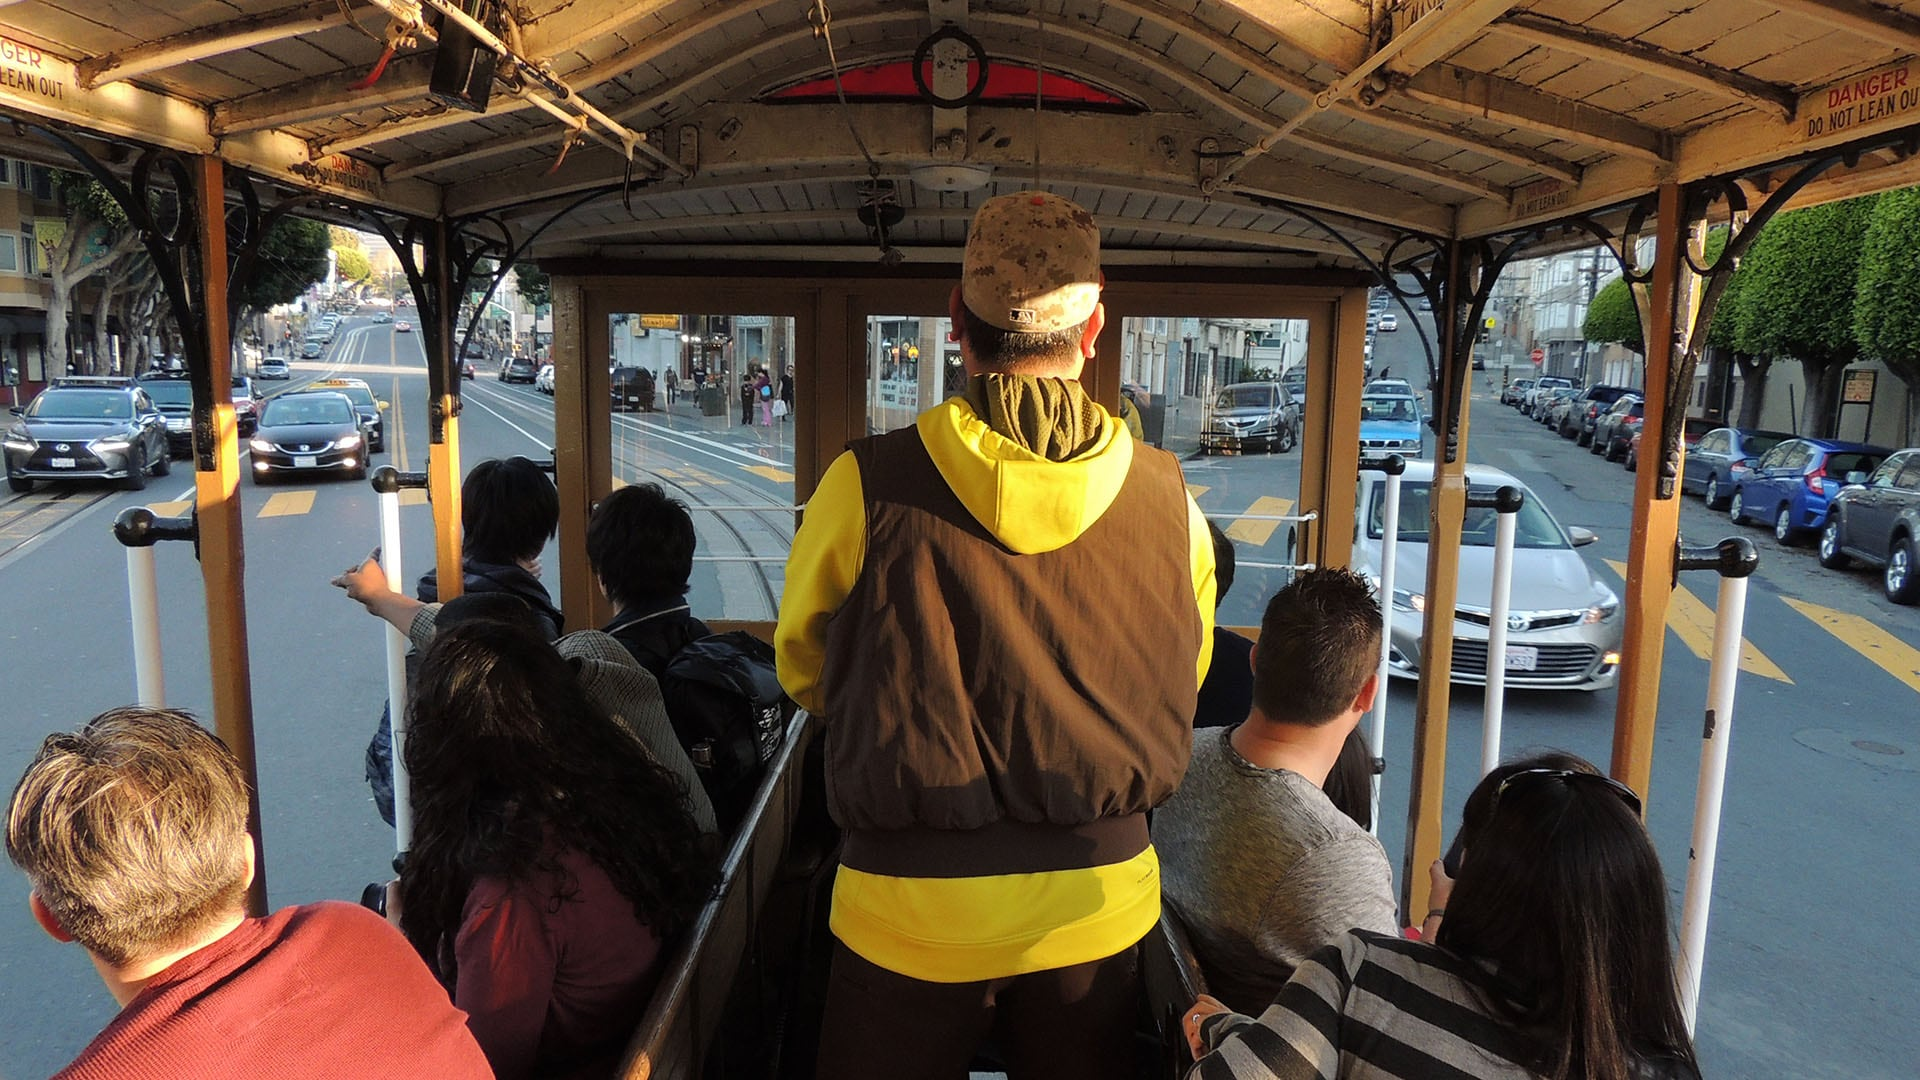 San Francisco boasts the last manually operated cable car system in the world.